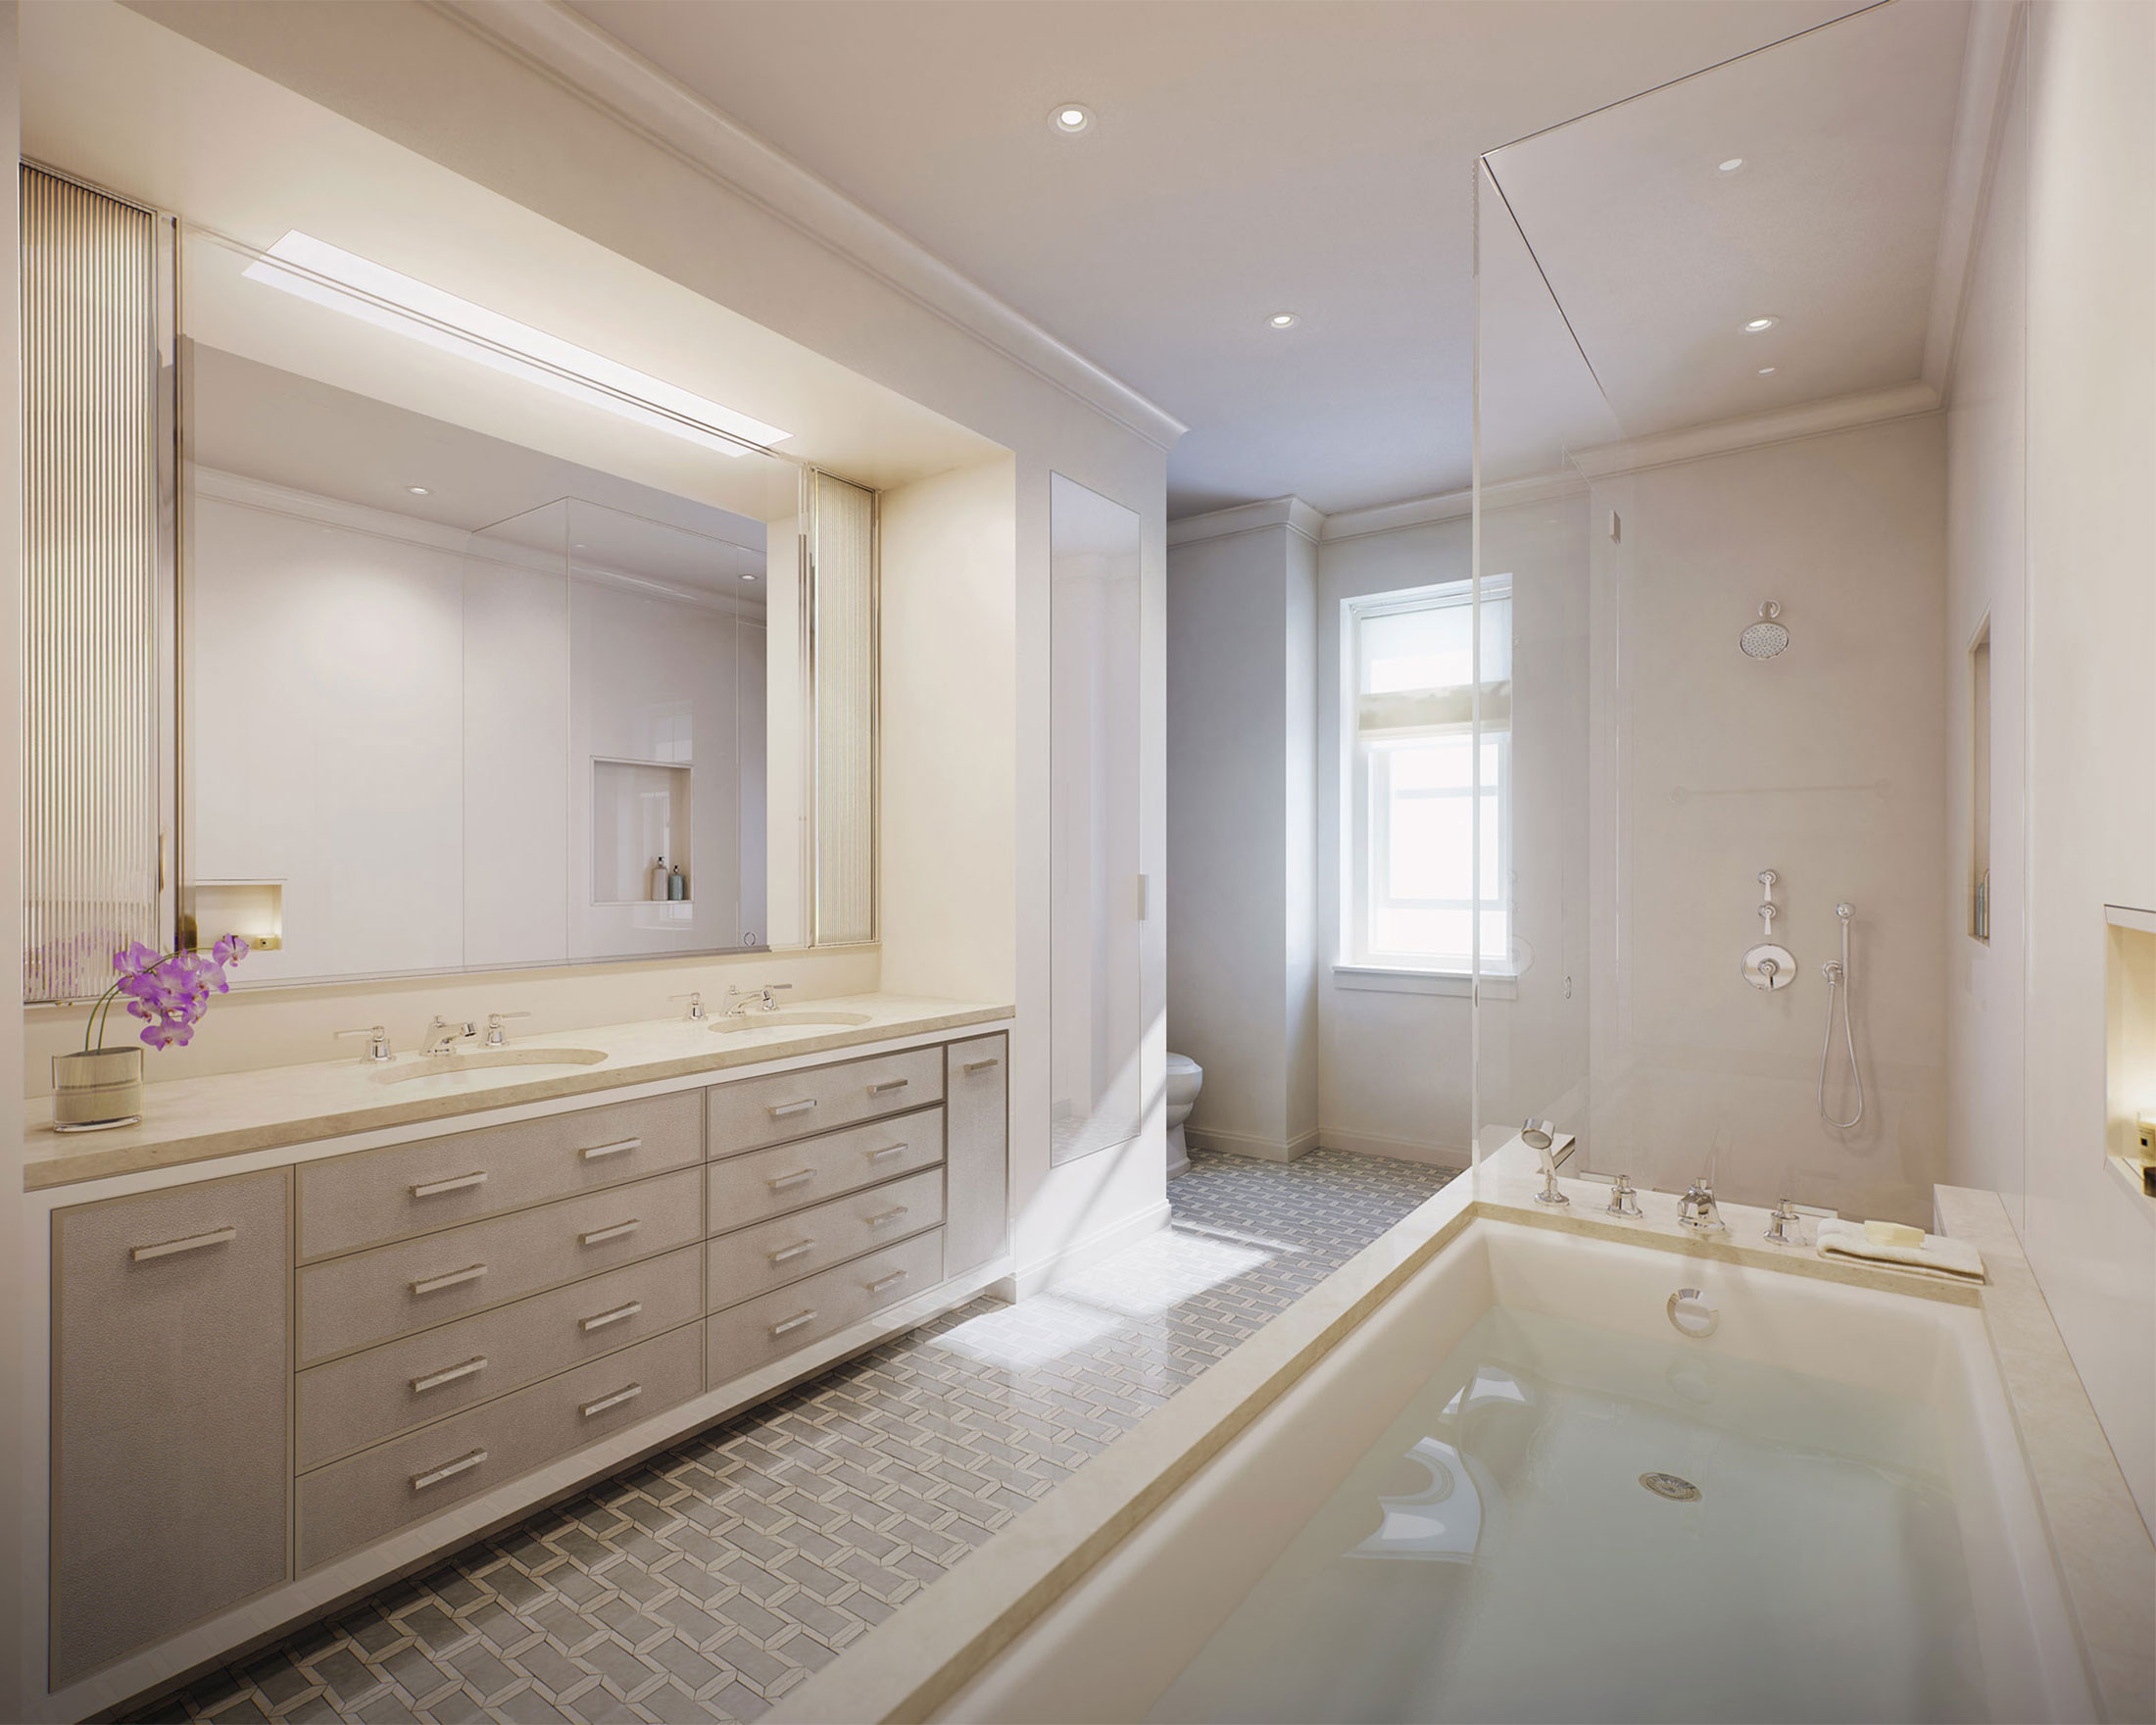 Architectural Rendering of the bathroom of the 498 West End Avenue project located on the Upper West Side, New York City